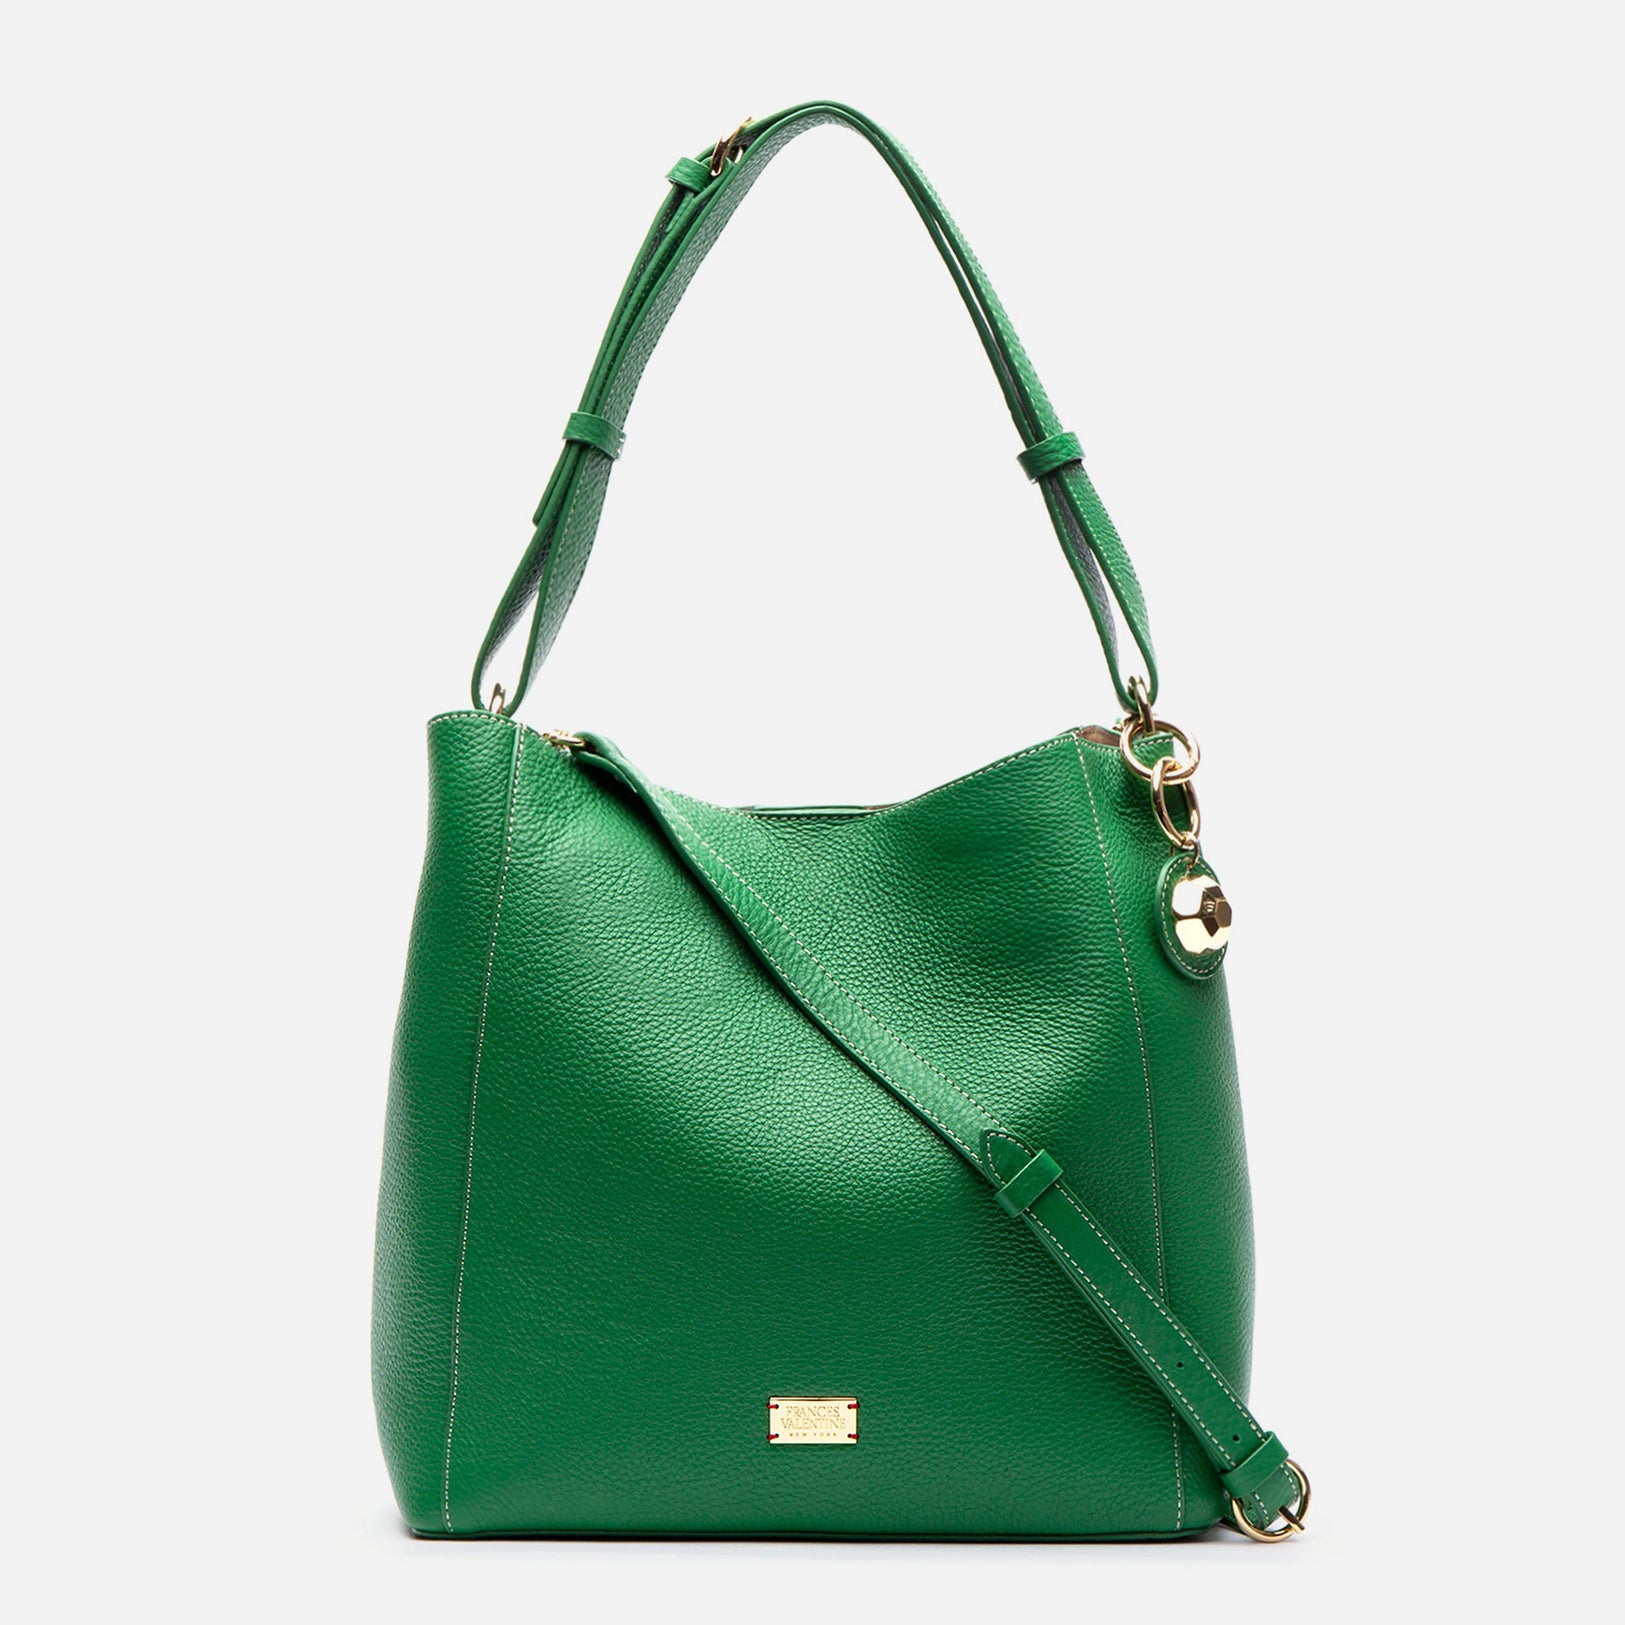 June Hobo Handbag Leather Grass